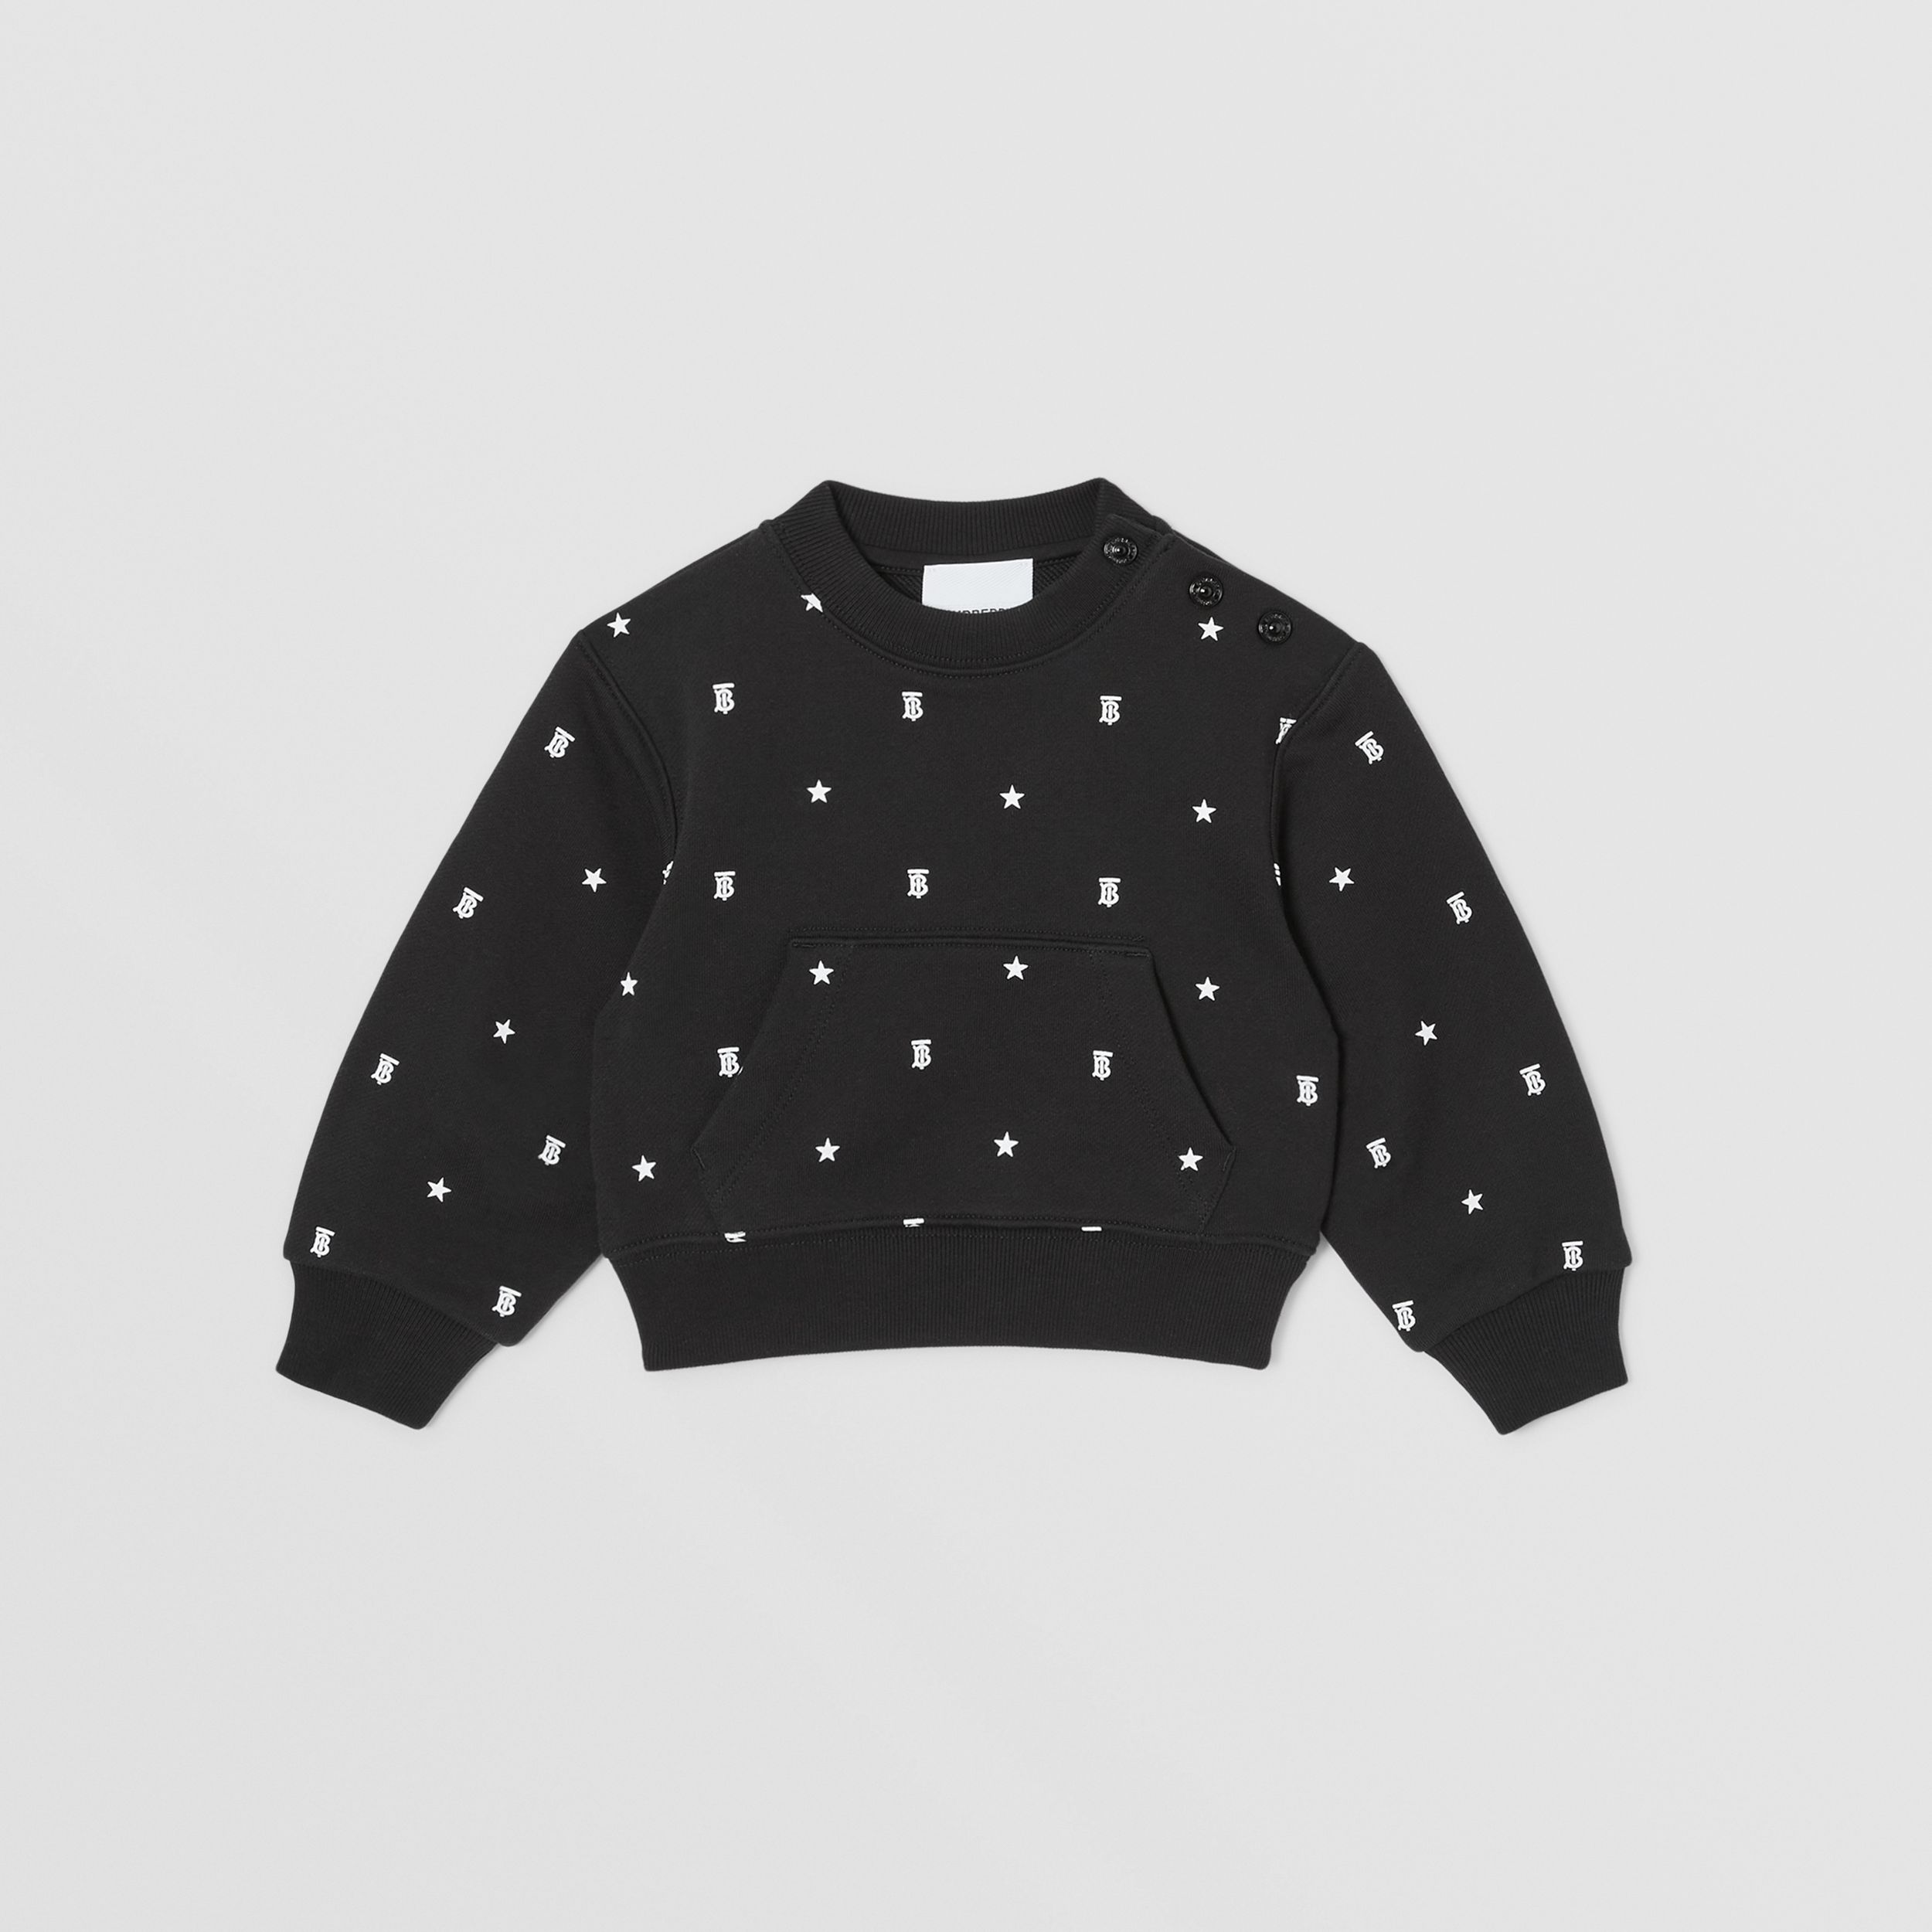 Star and Monogram Motif Cotton Sweatshirt in Black - Children | Burberry - 1